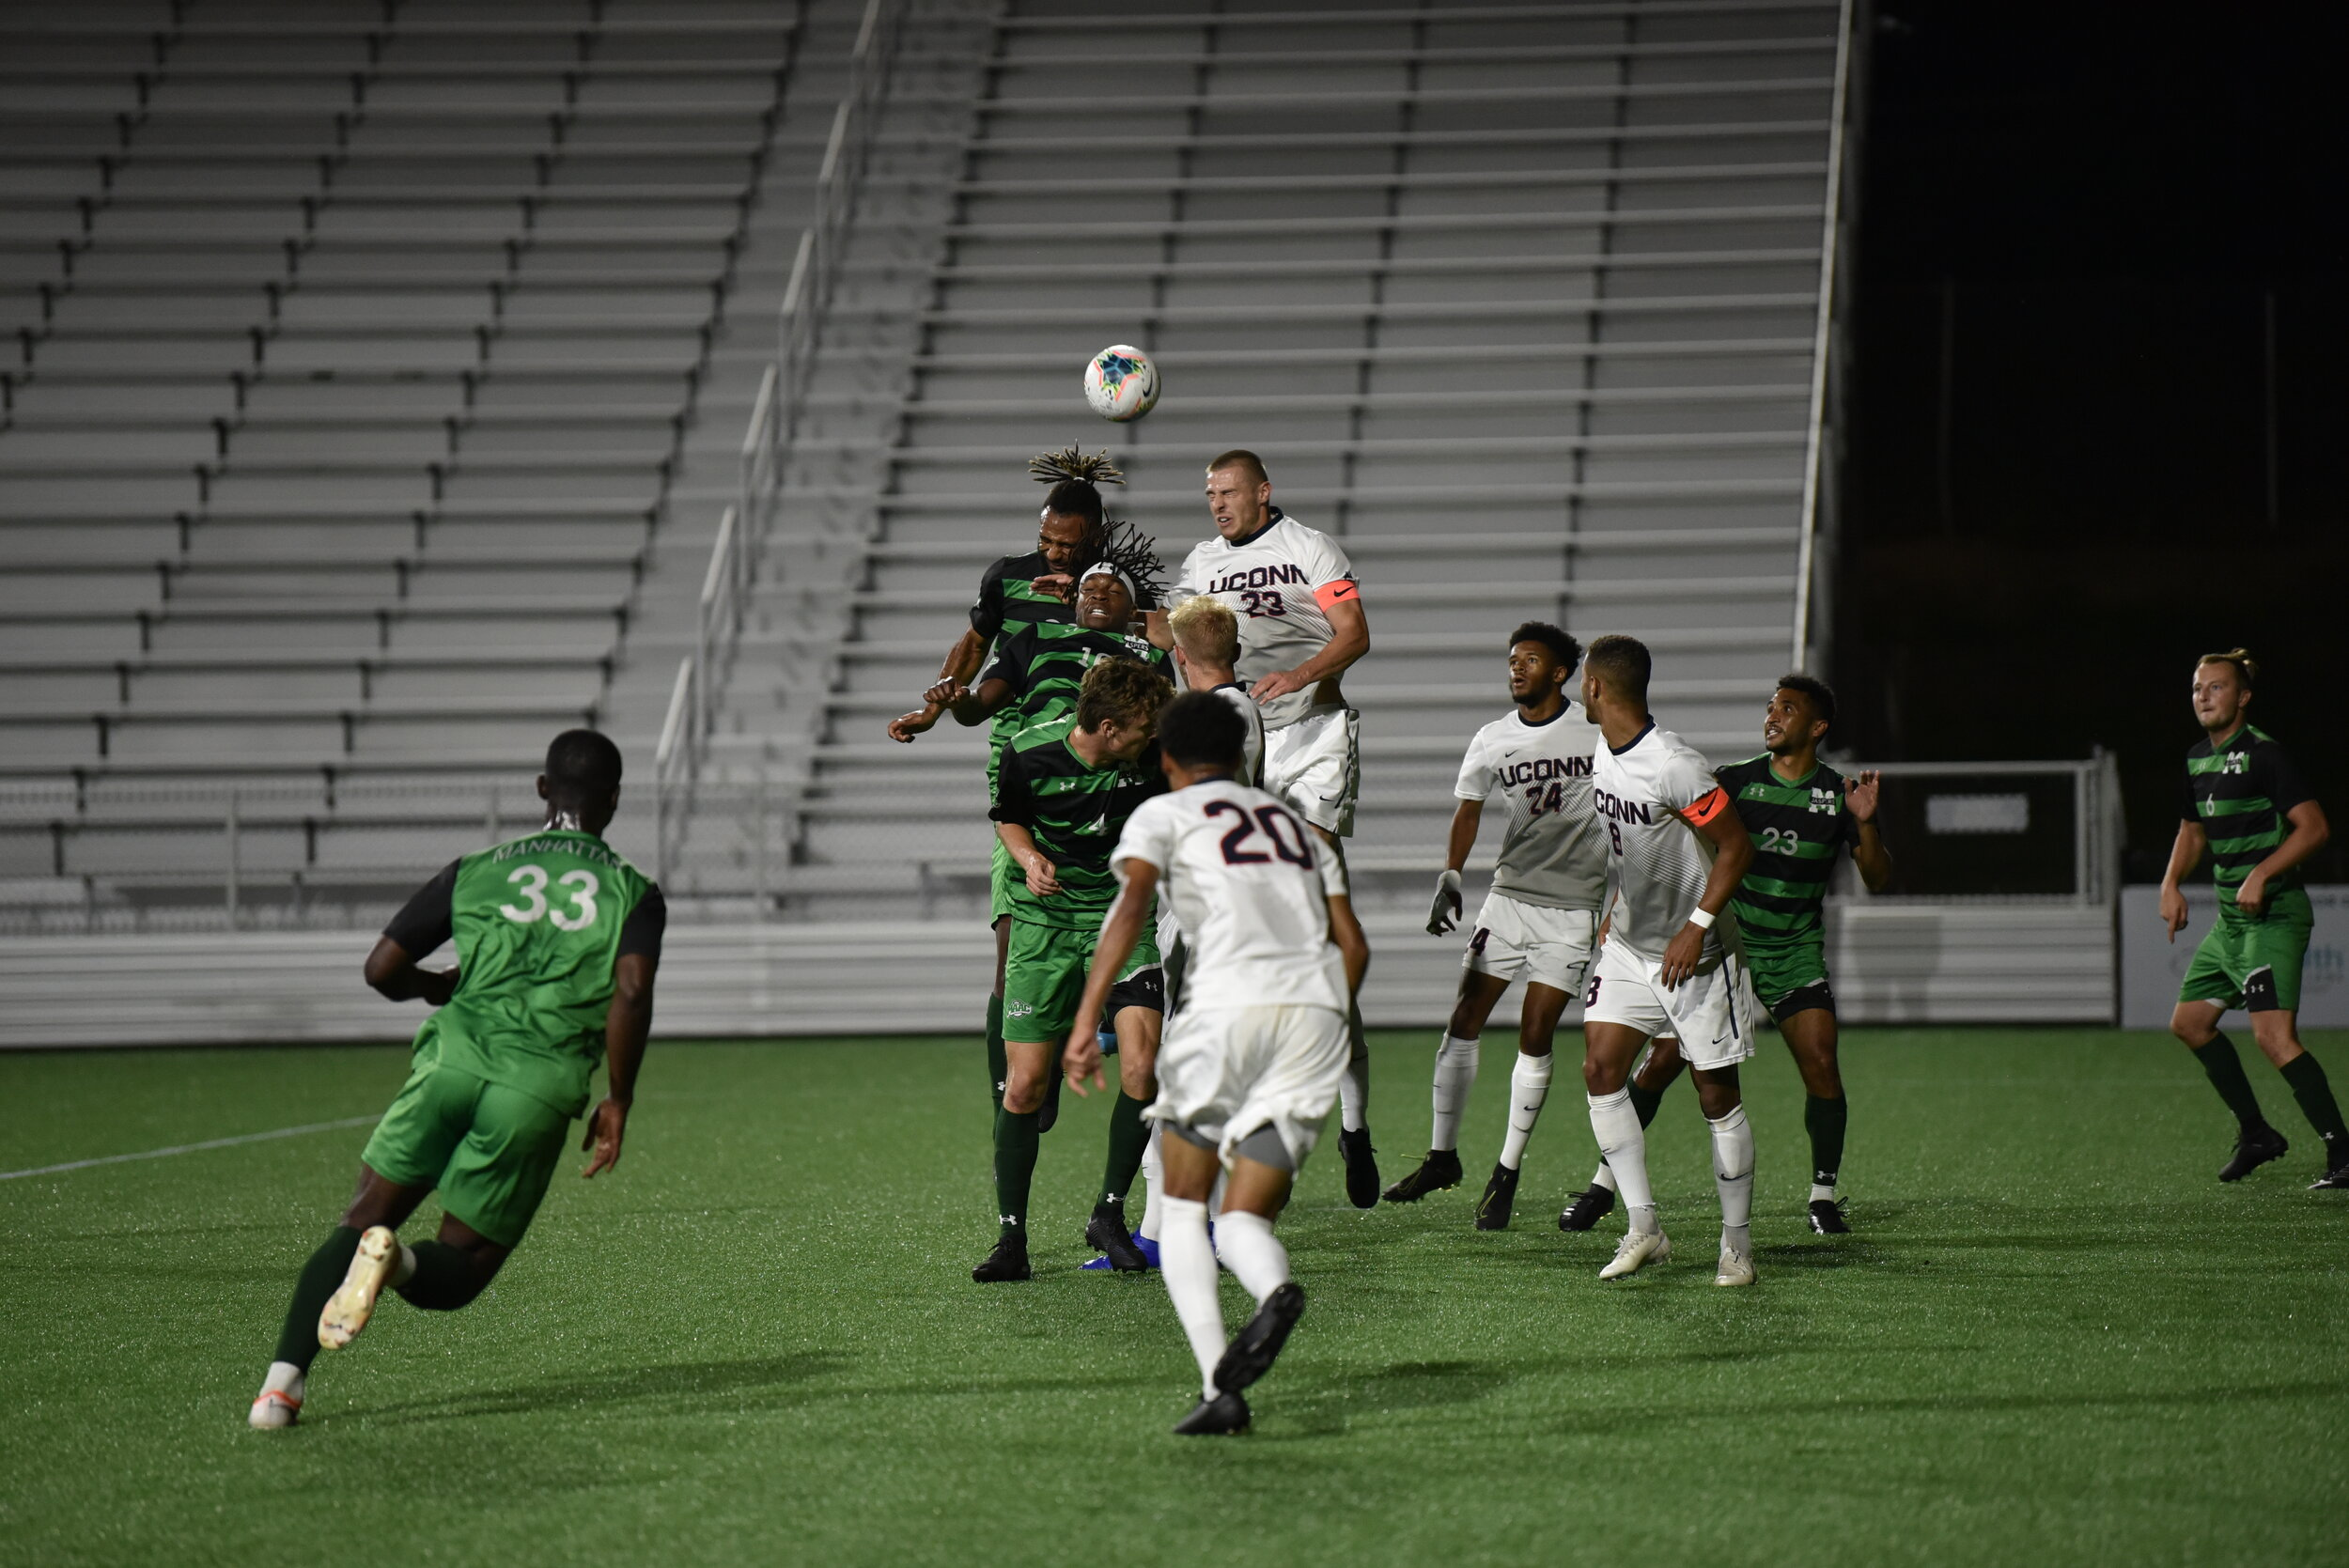 UConn men's soccer defeats Manhattan College at Dillon Stadium in Hartford on Sept. 17, 2019.  Photo by Eric Wang/The Daily Campus